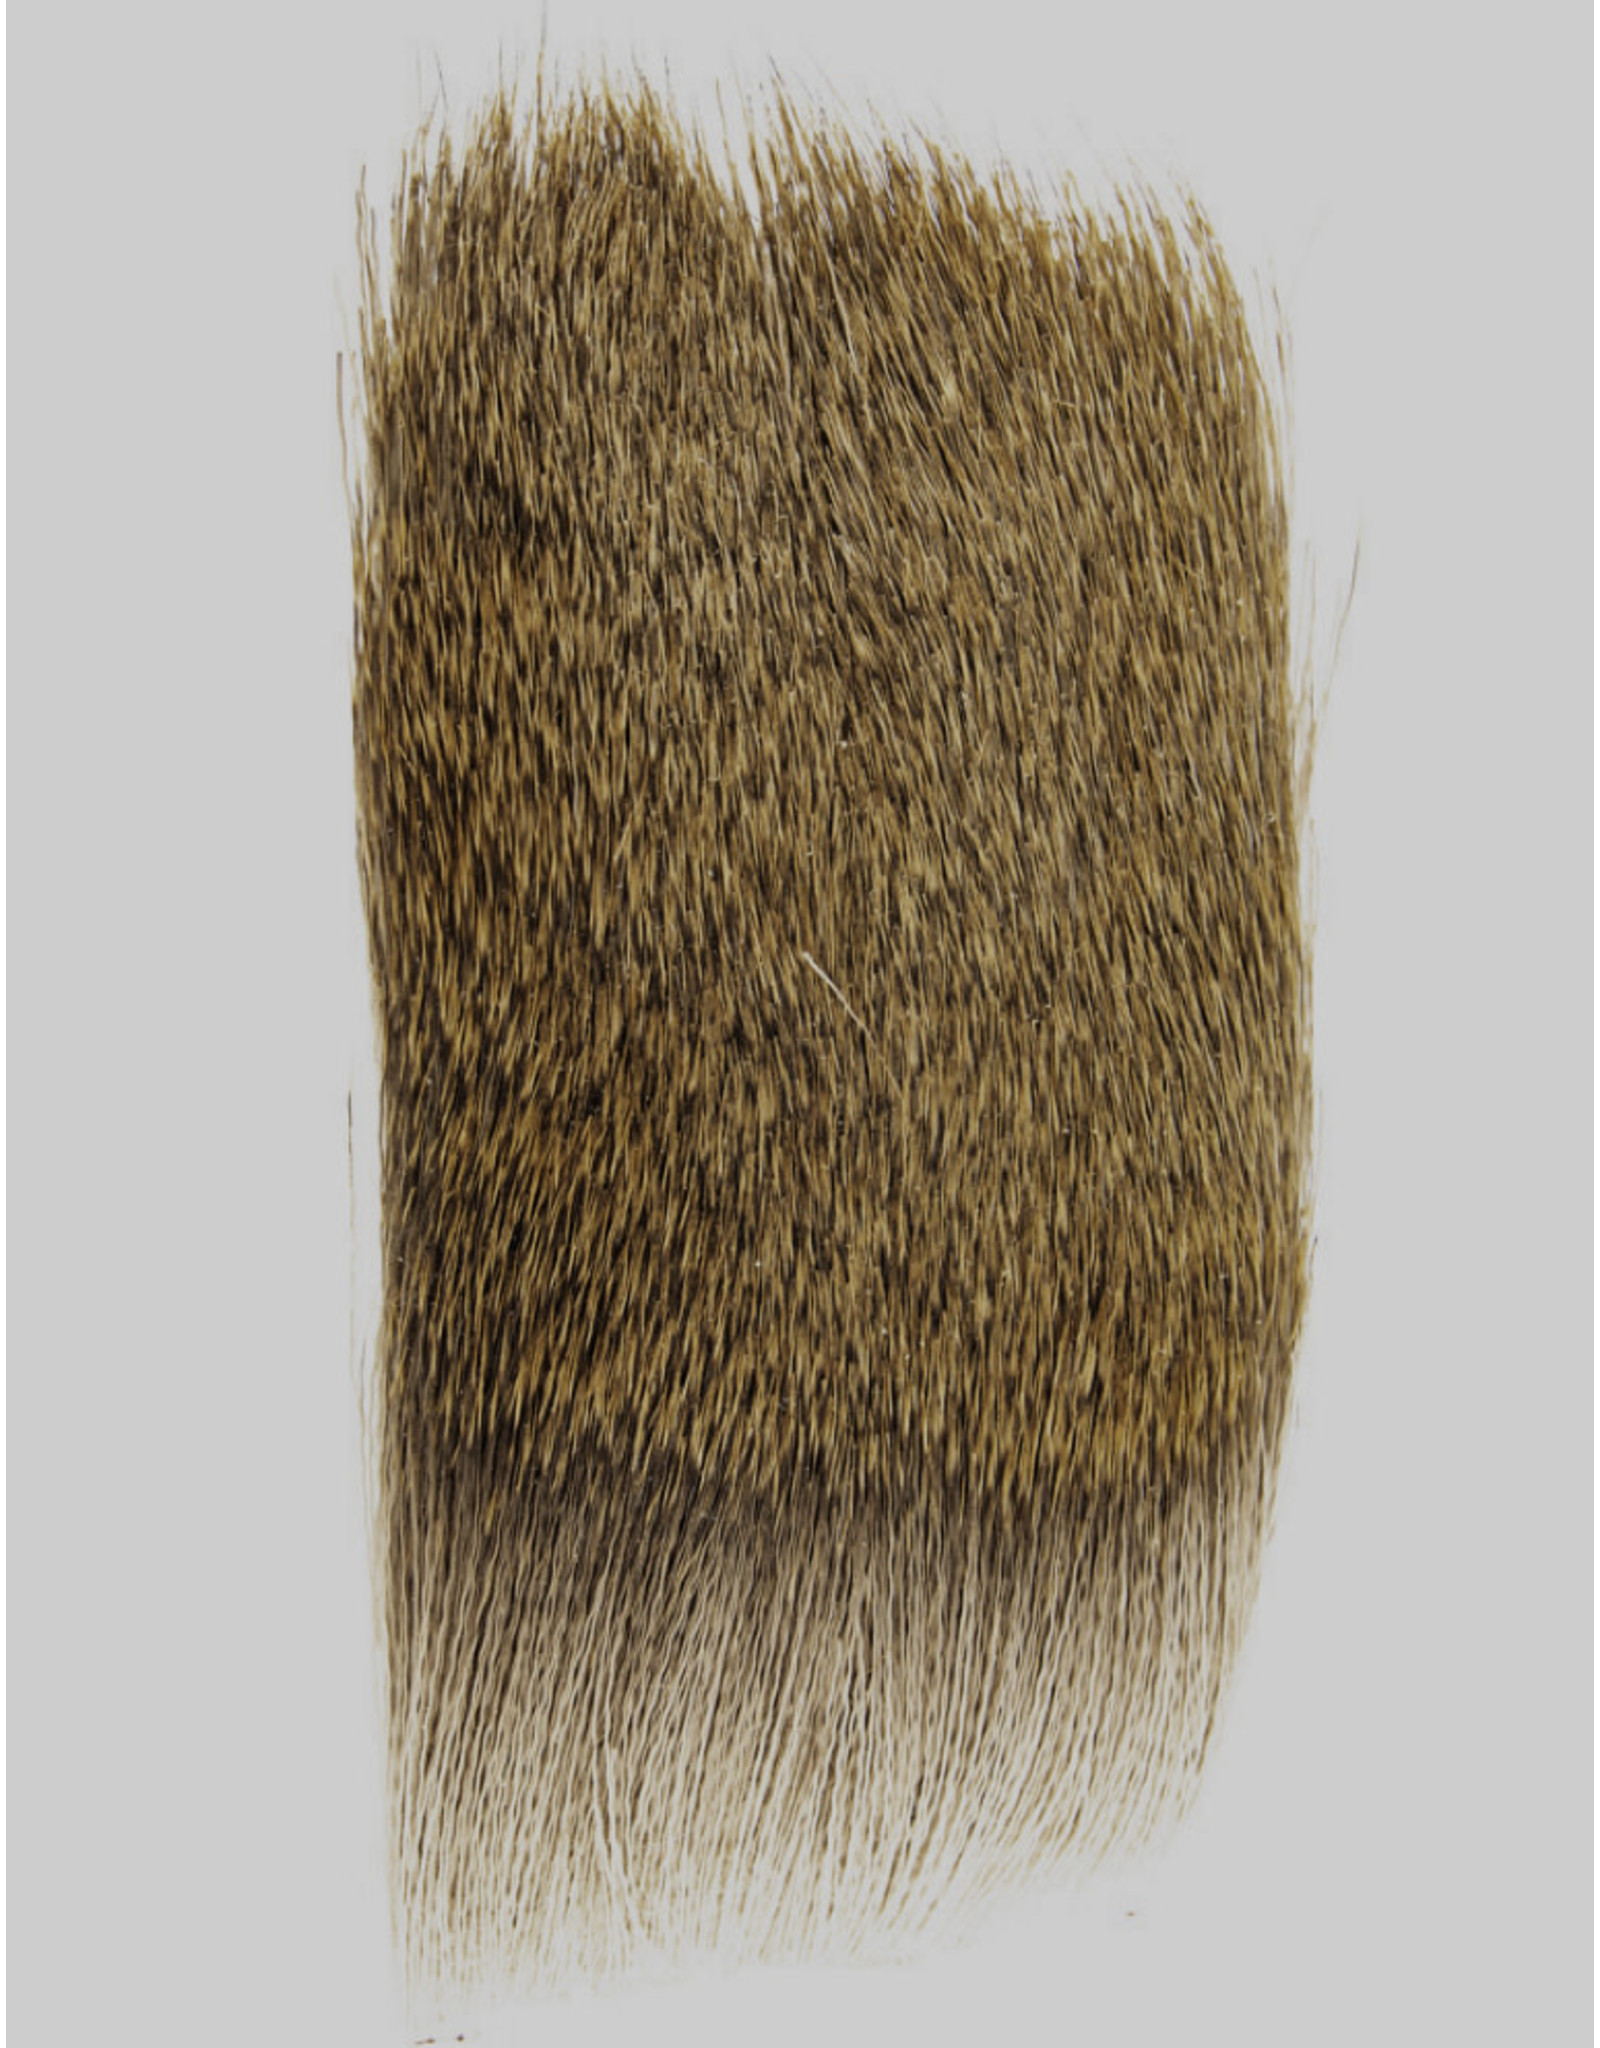 SHOR SHOR Deer Body Hair Dyed from Natural - Bleached